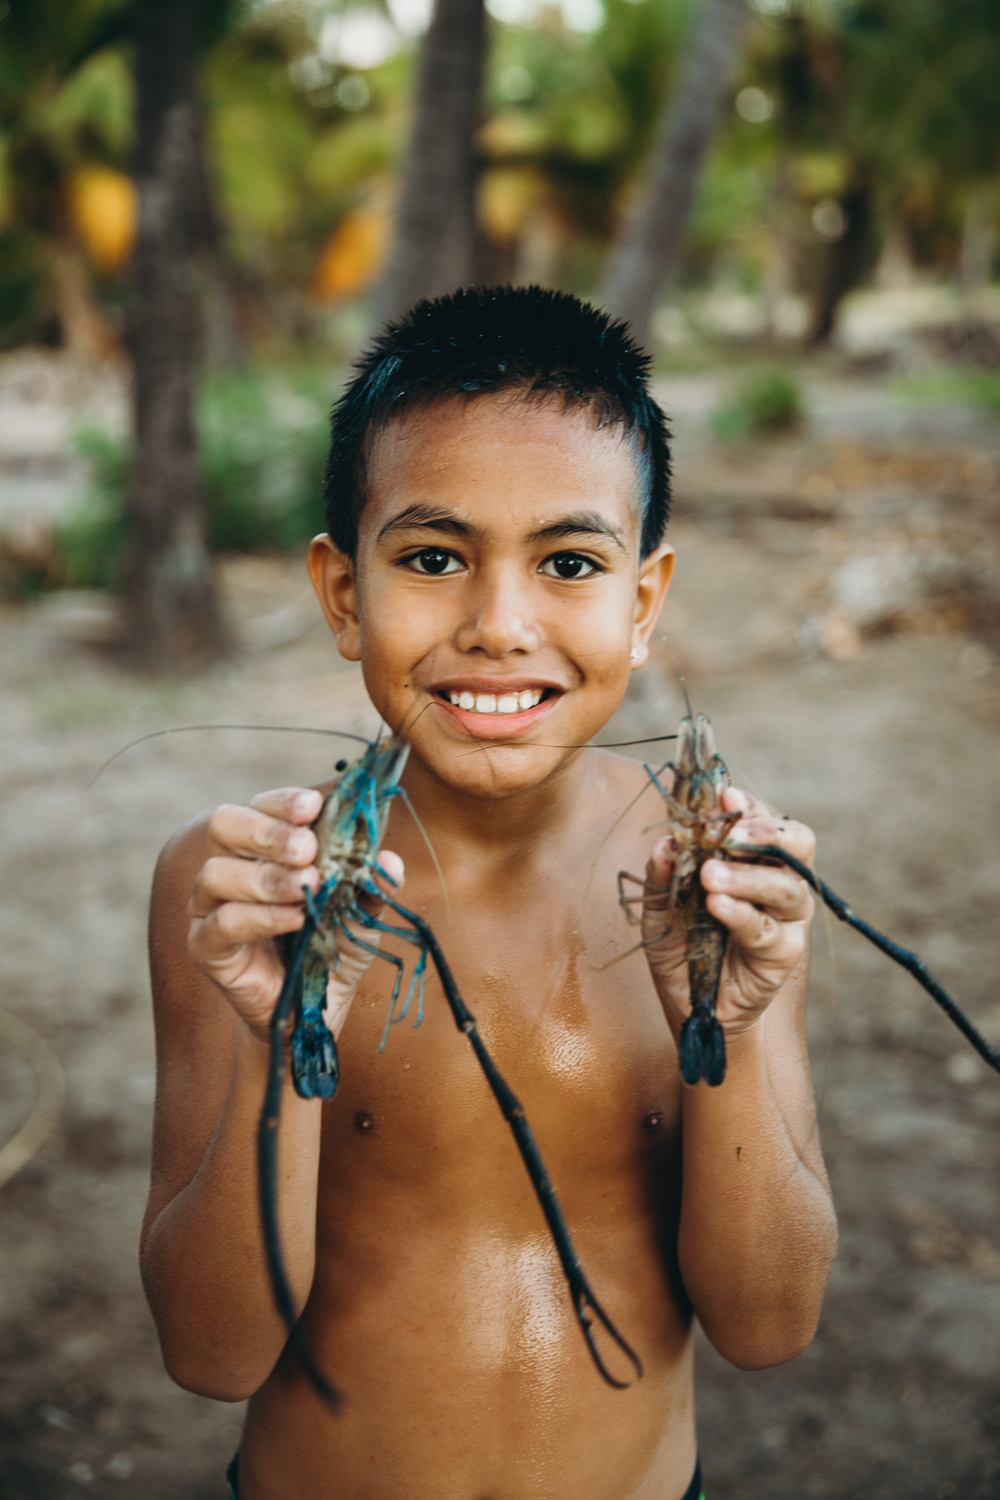 A little boy showing off his catch in Moloka'i!